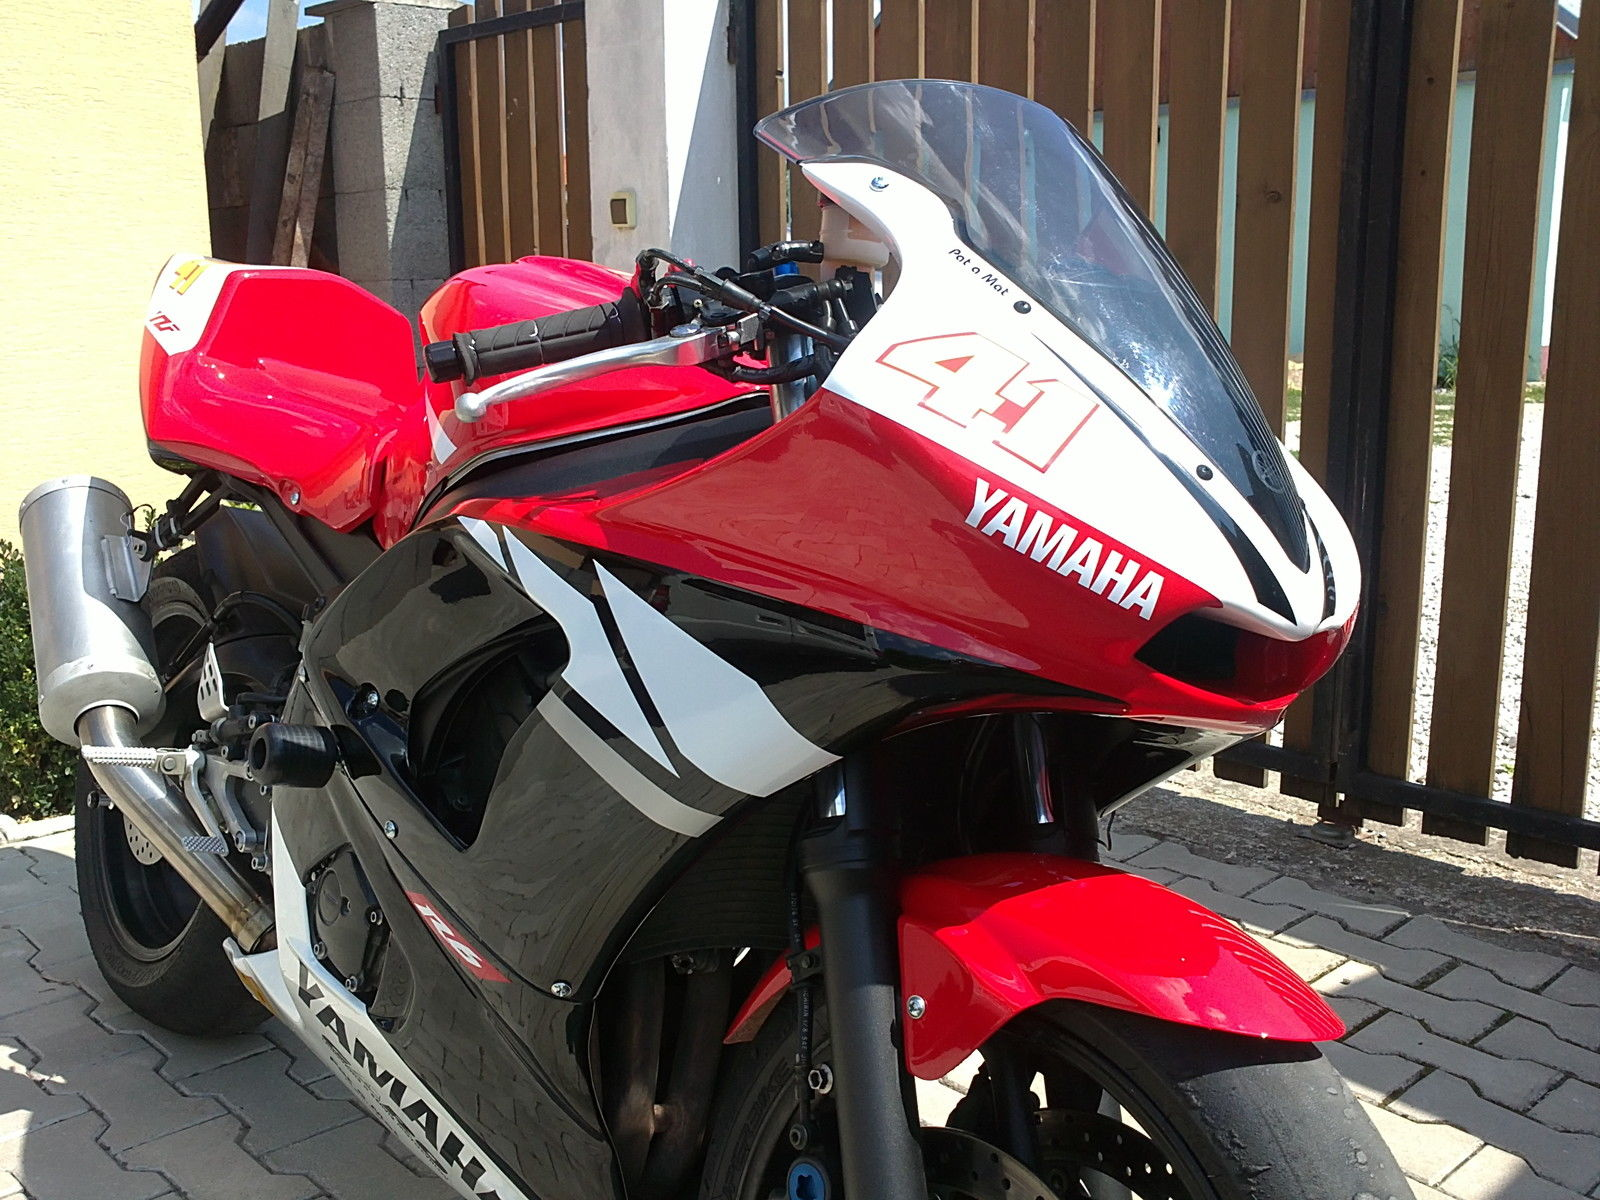 CBR600RR 03, rennverkleidung, hocker, race fairings, bodywork , Honda